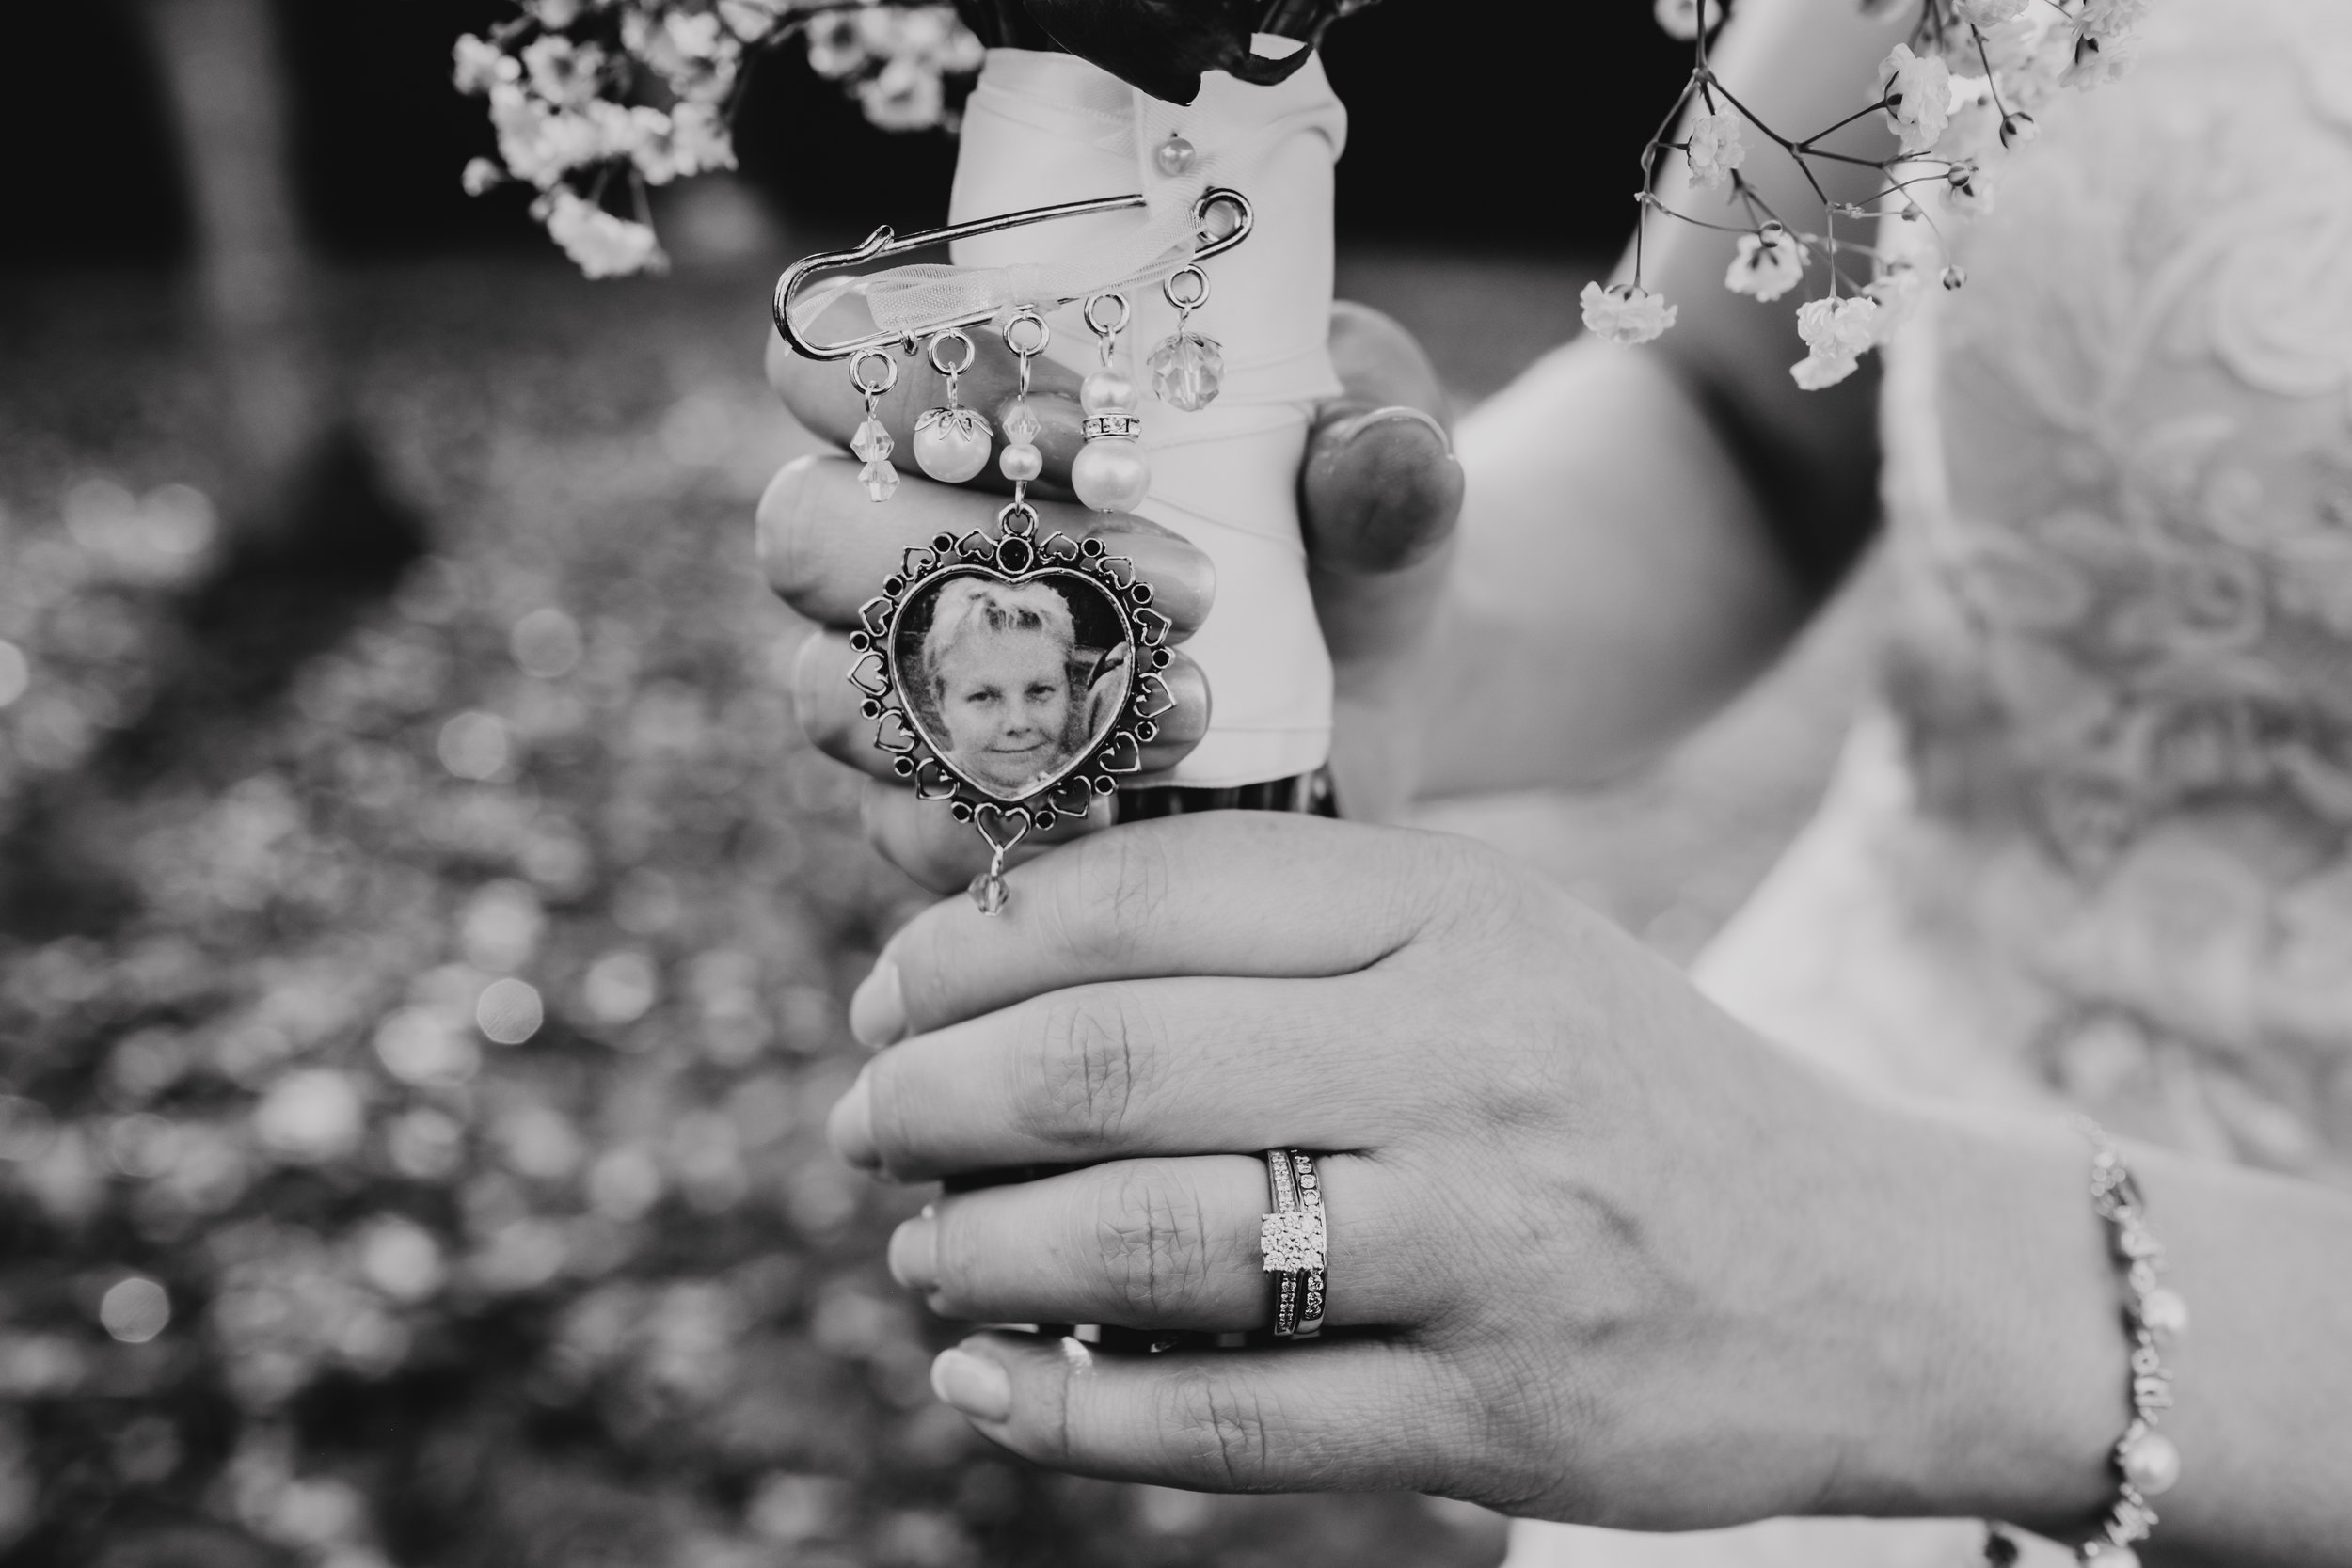 Bride includes photograph of her mother who passed away in her wedding bouquet